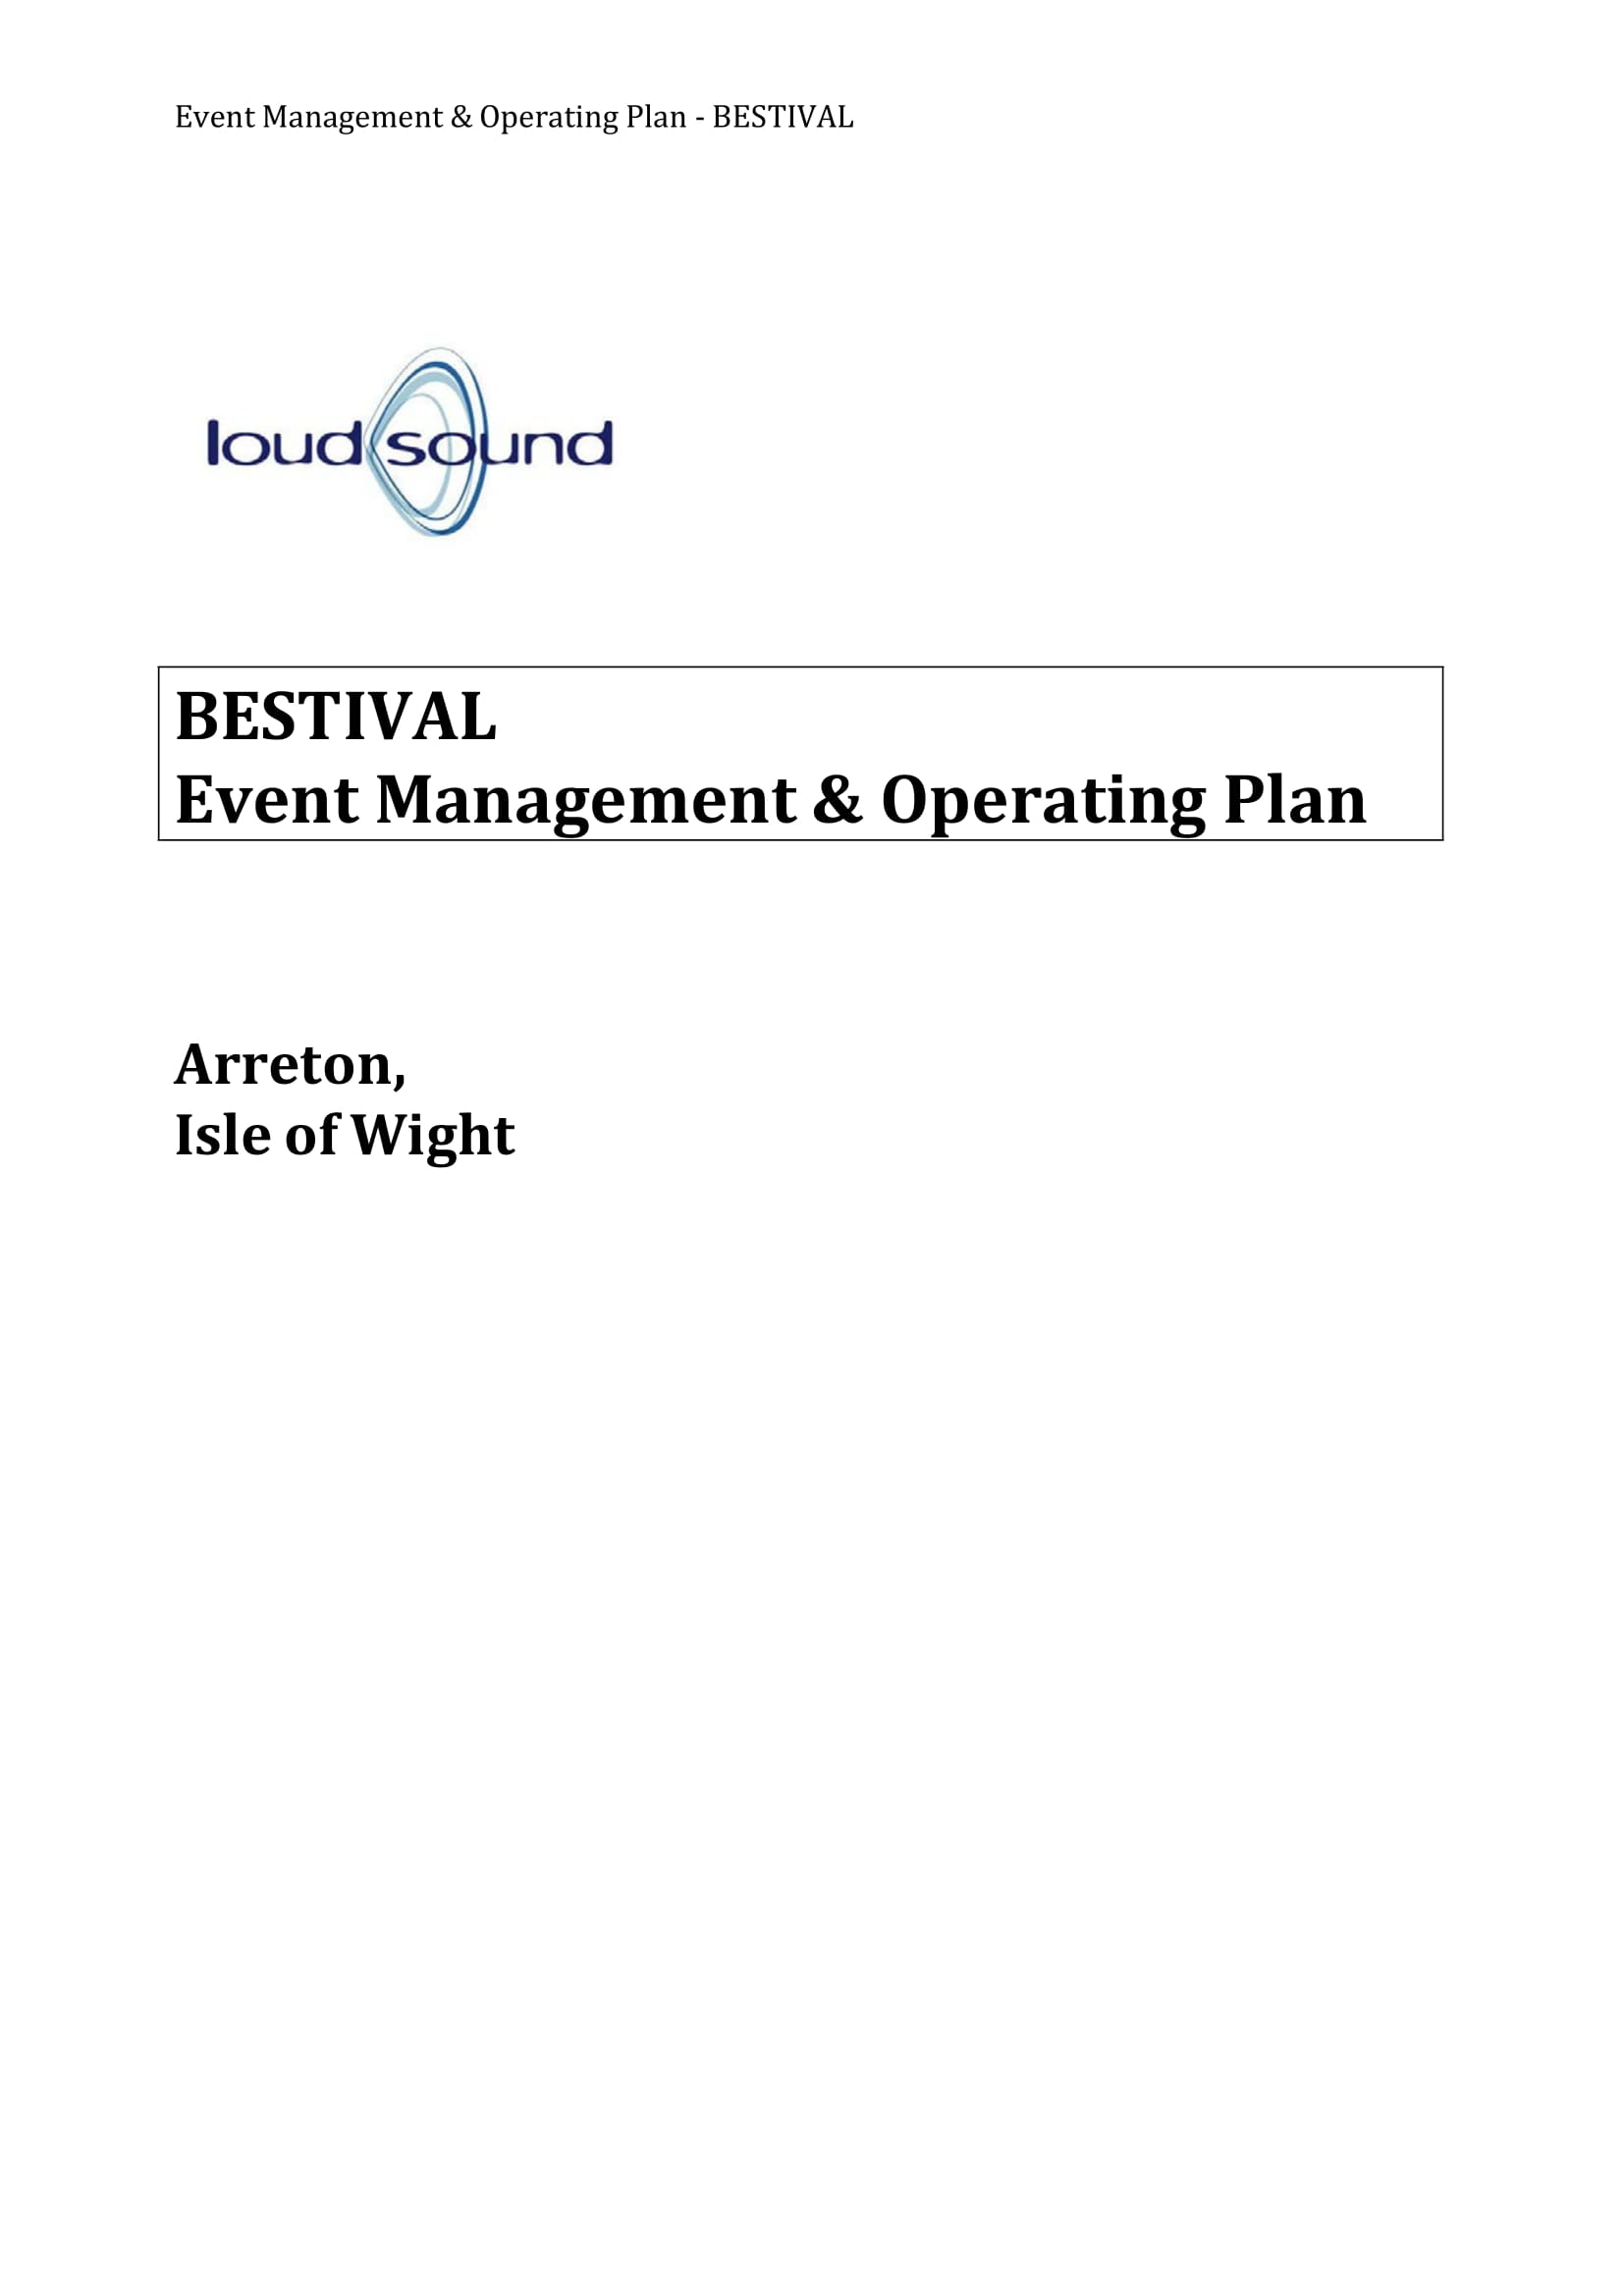 event management and operating plan example 01